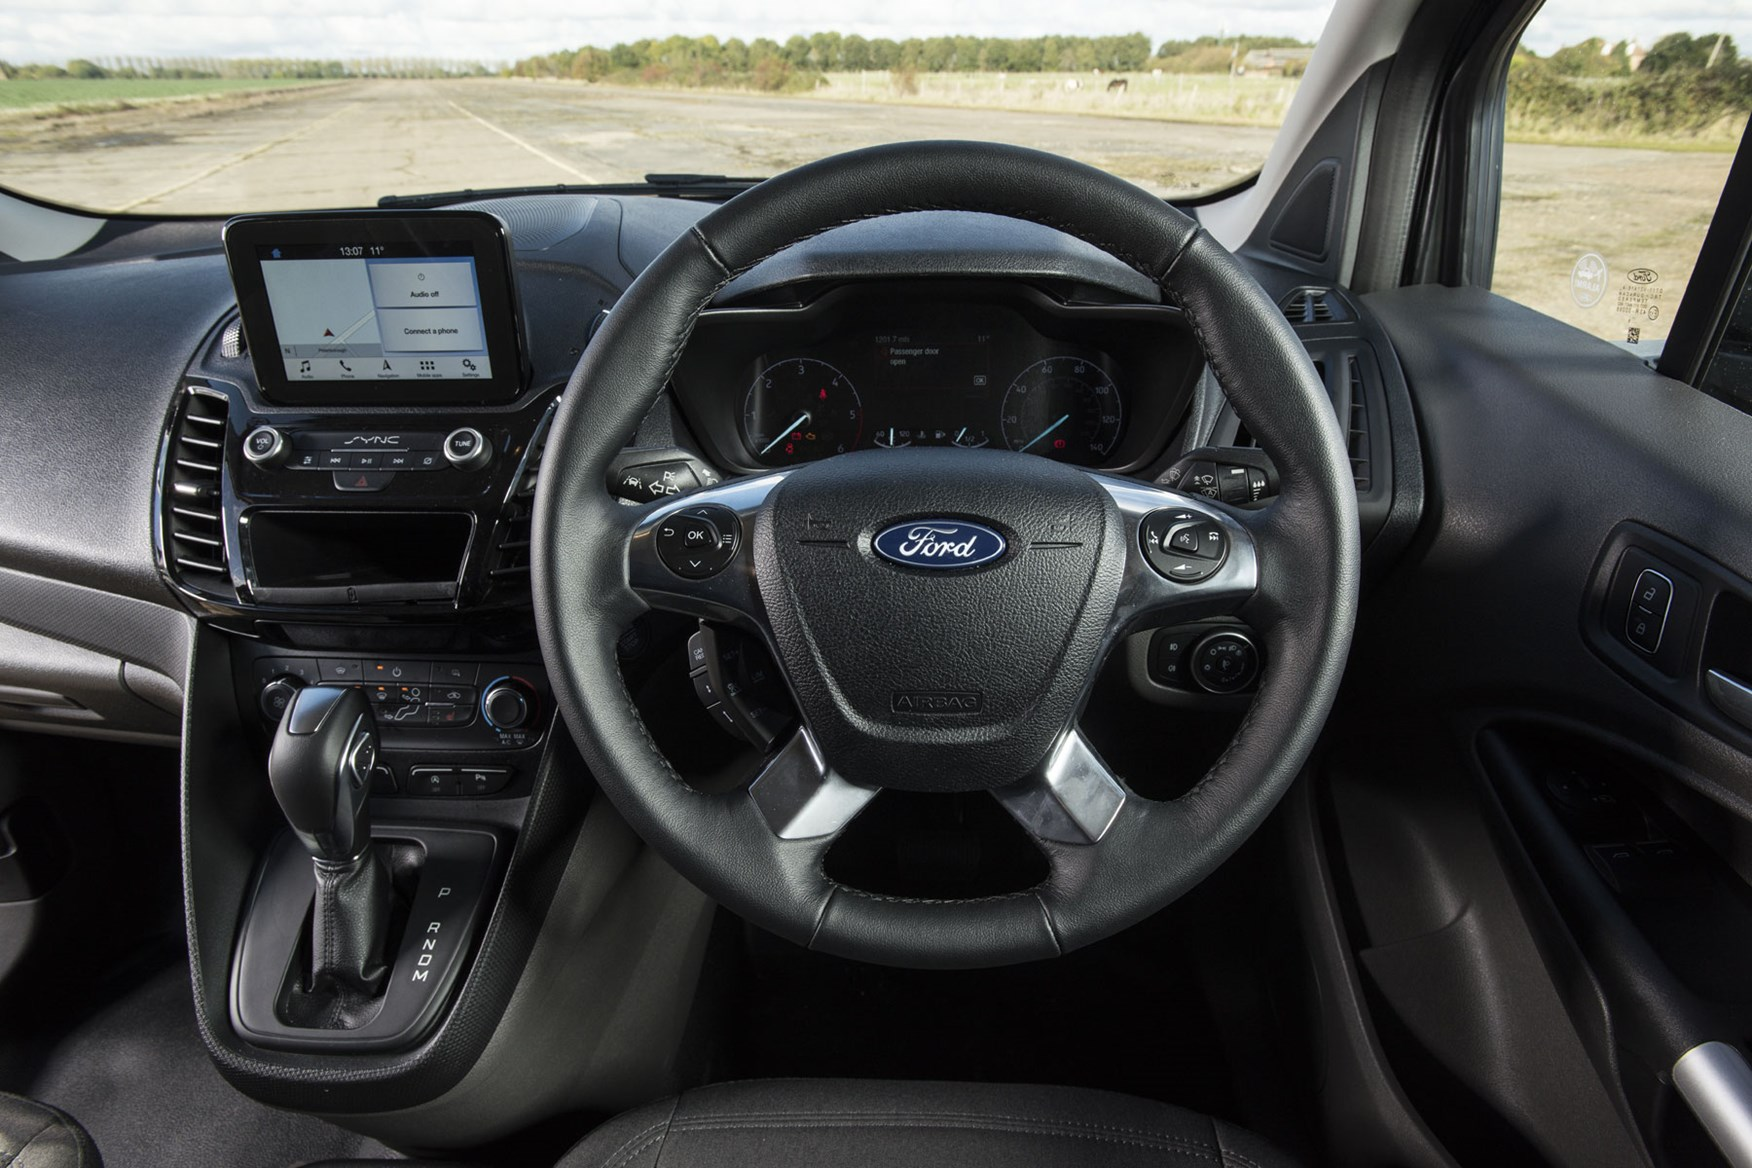 Ford Transit Connect automatic review - cab interior, steering wheel, 2019